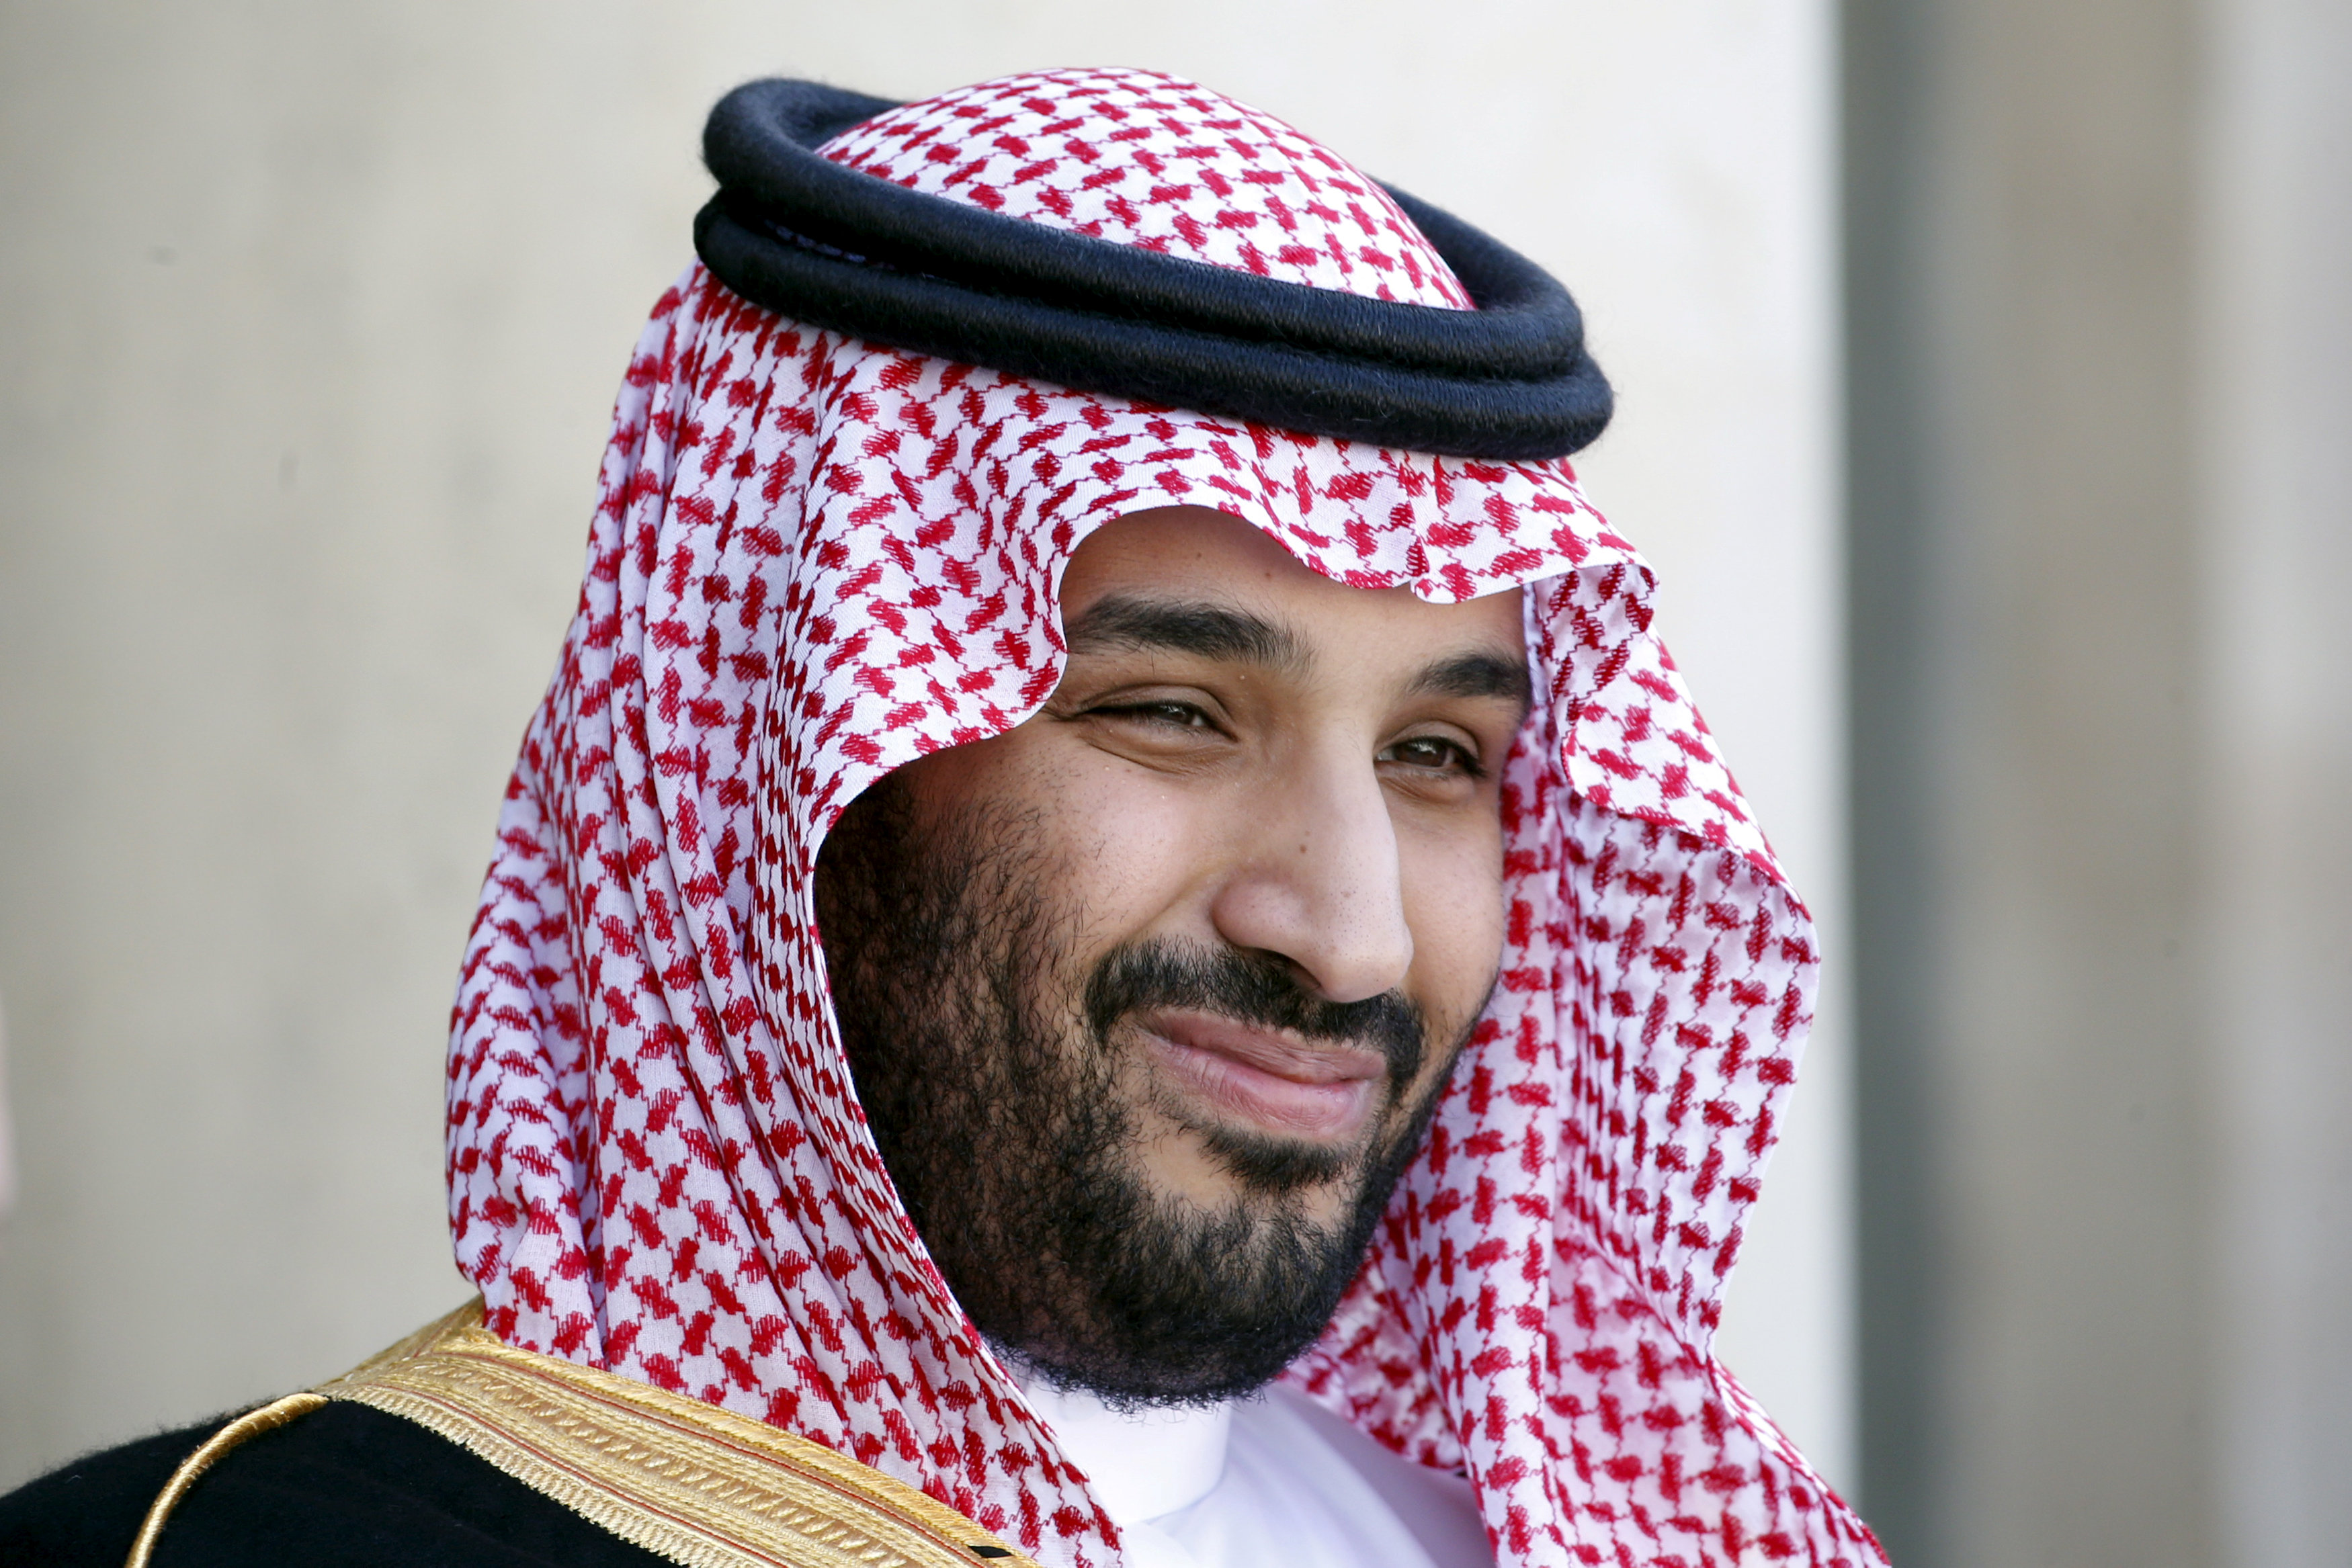 FILE PHOTO: Saudi Arabia's then Deputy Crown Prince Mohammed bin Salman reacts upon his arrival at the Elysee Palace in Paris, France, June 24, 2015. REUTERS/Charles Platiau/File Photo